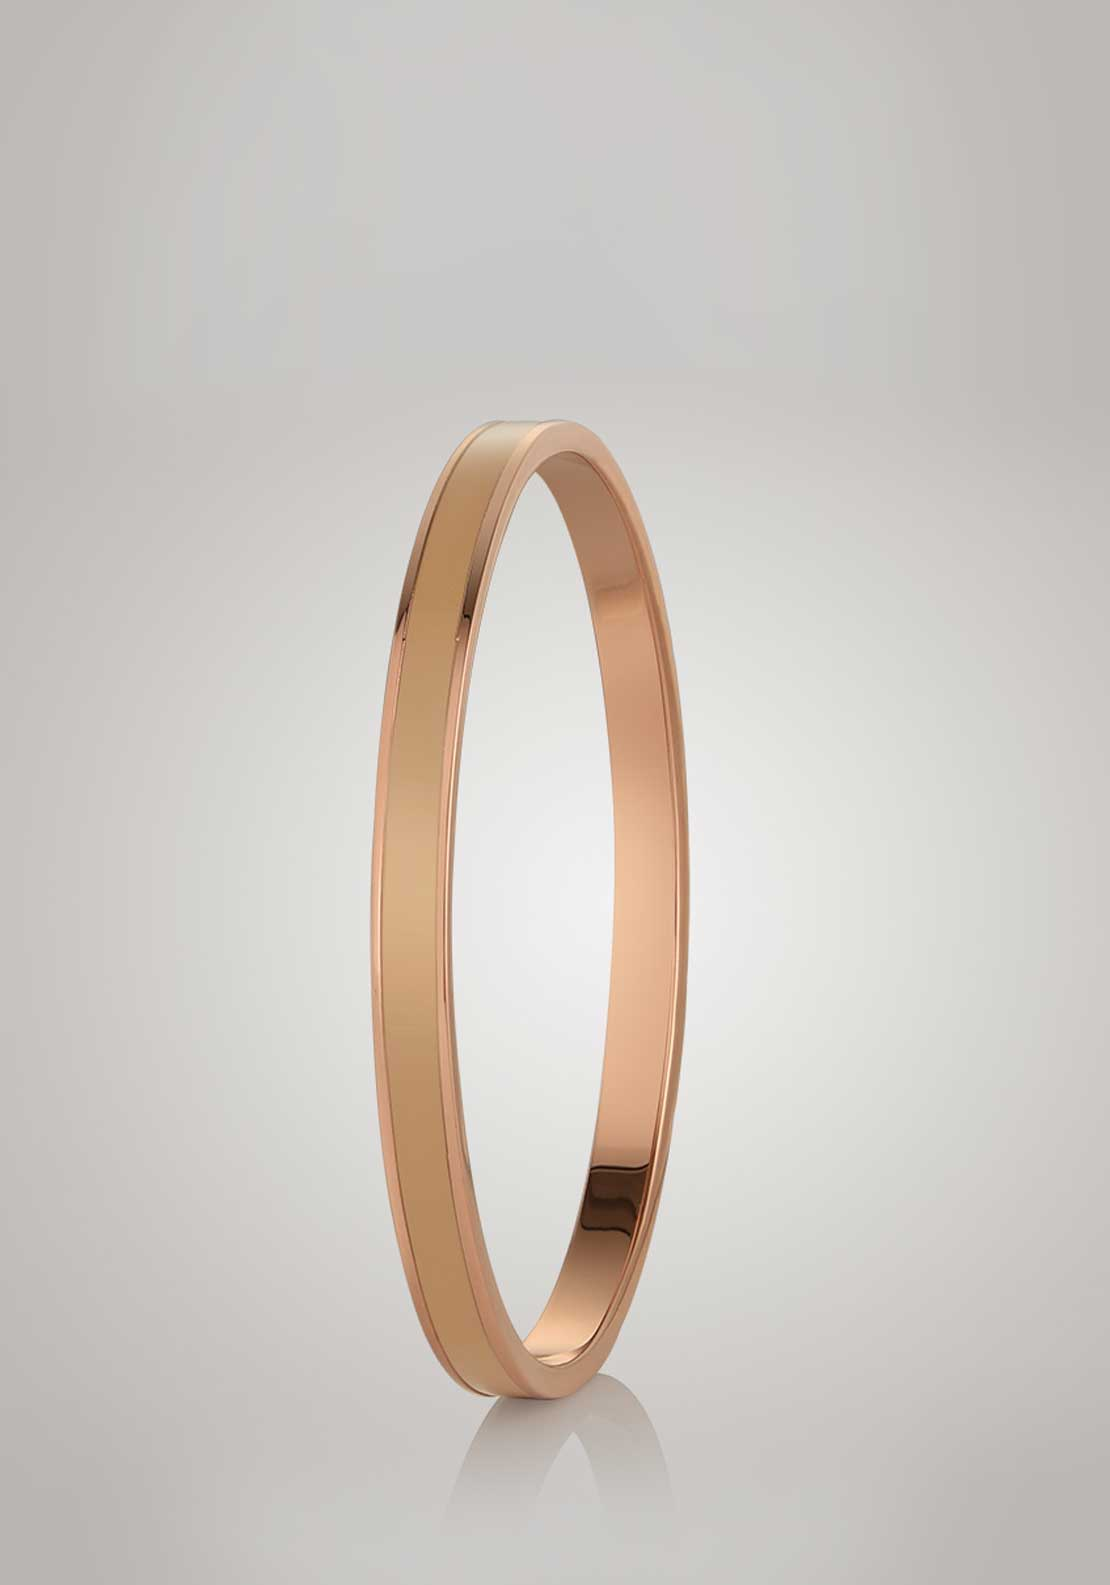 Newbridge Silverware Small Nude Bangle, Rose Gold